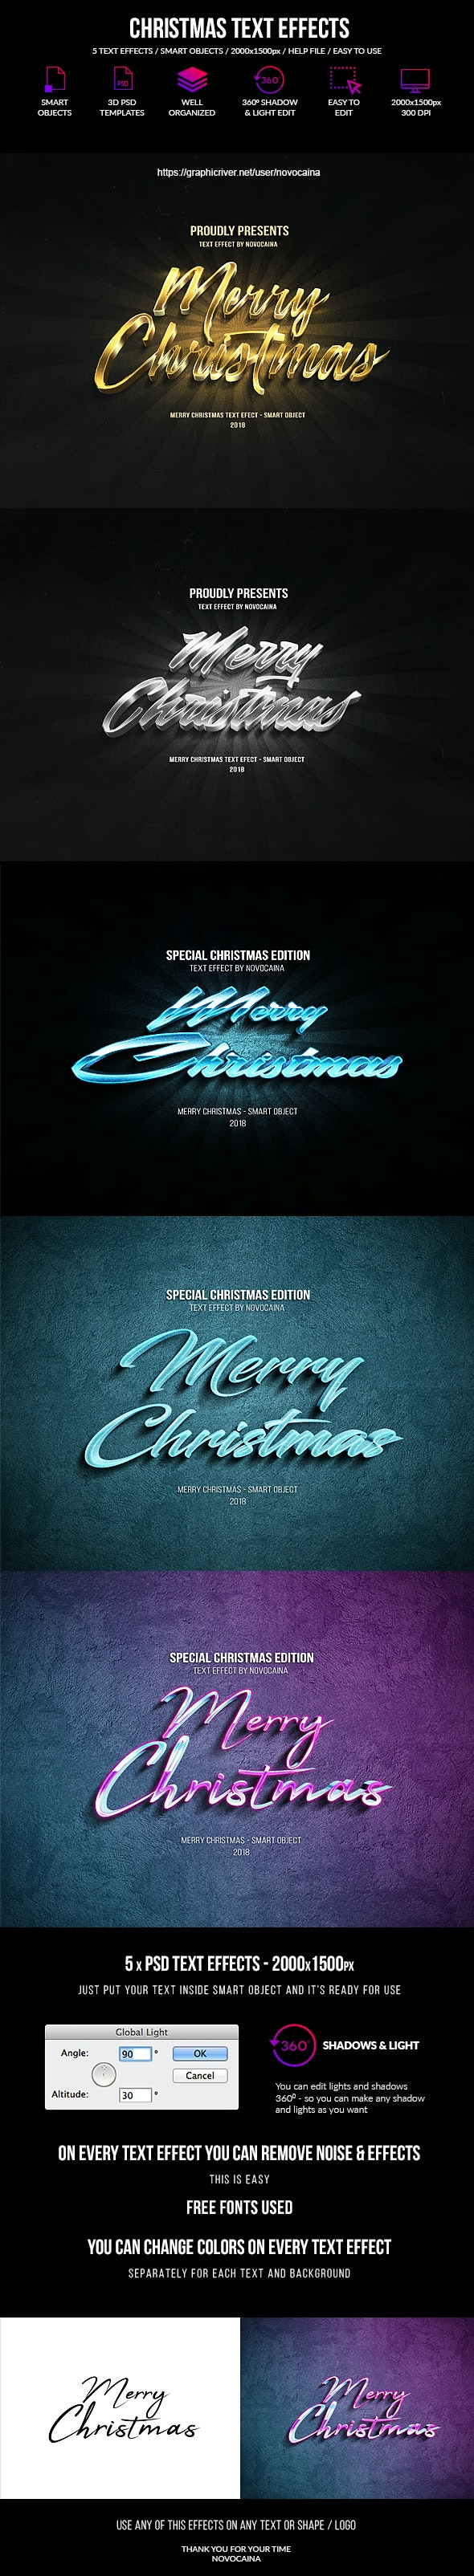 Christmas Text Effects - Text Effects Actions